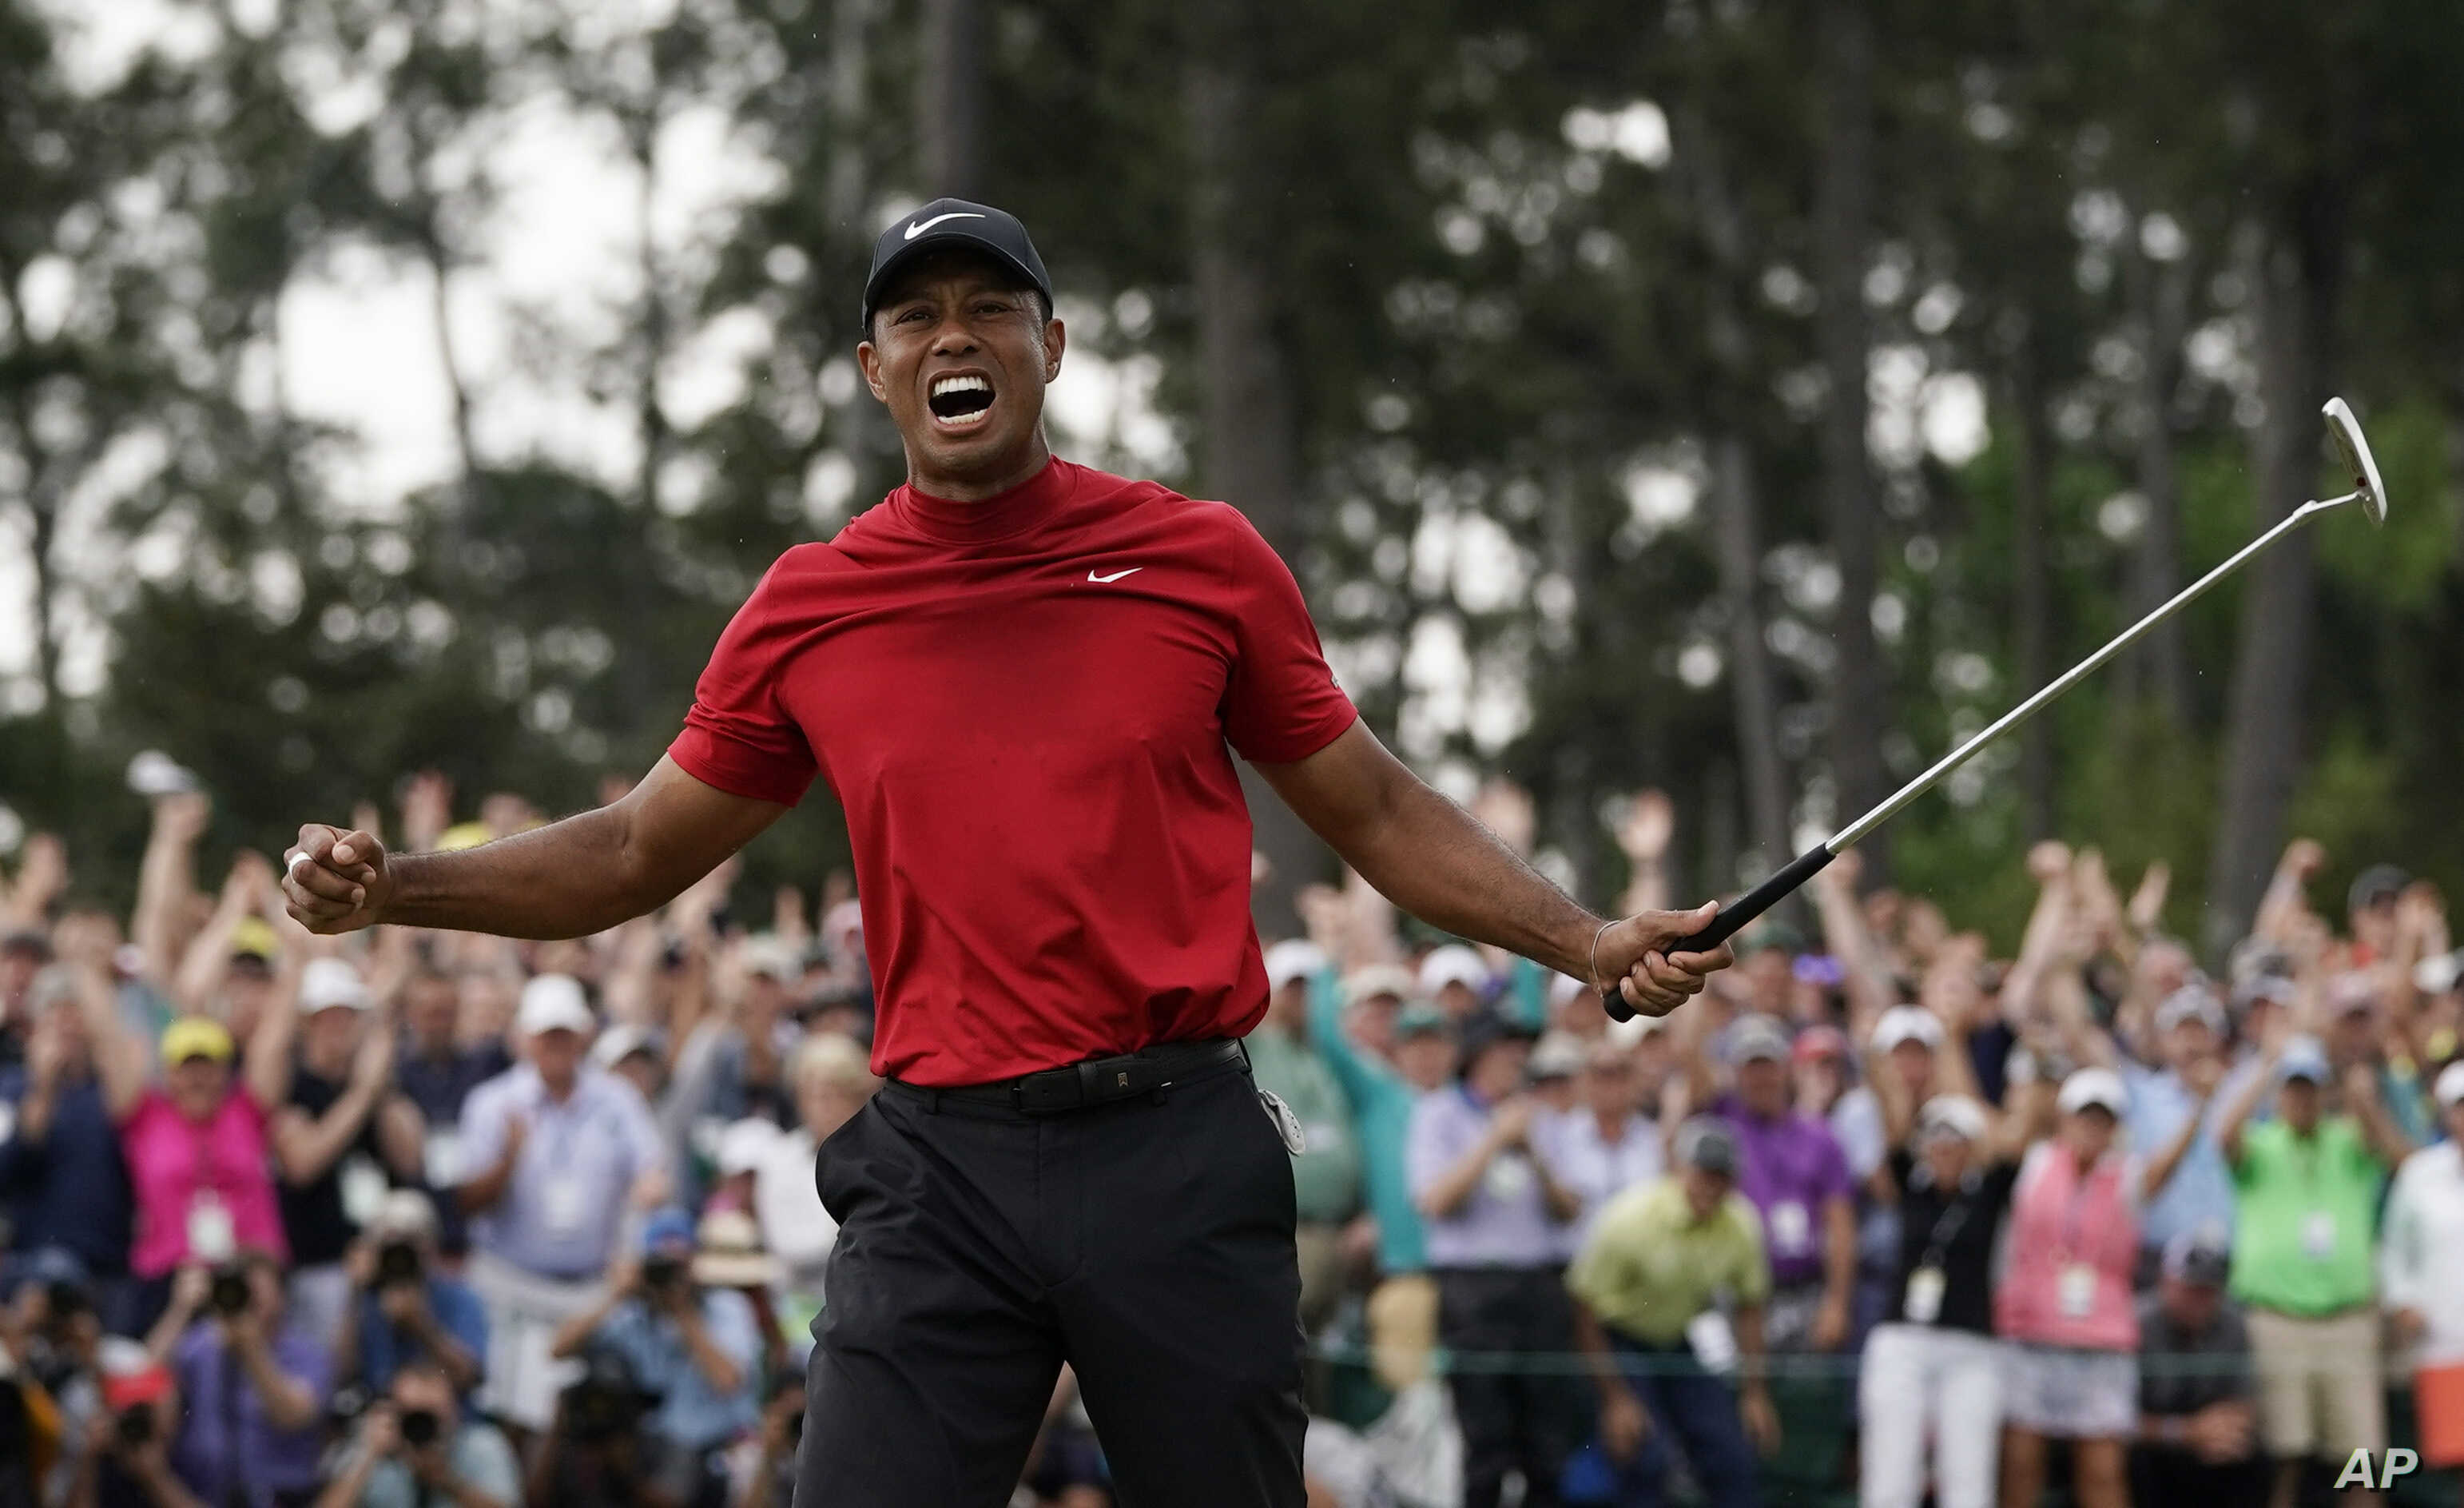 Tiger Woods Wins Masters His 15th Major Golf Championship Voice Of America English